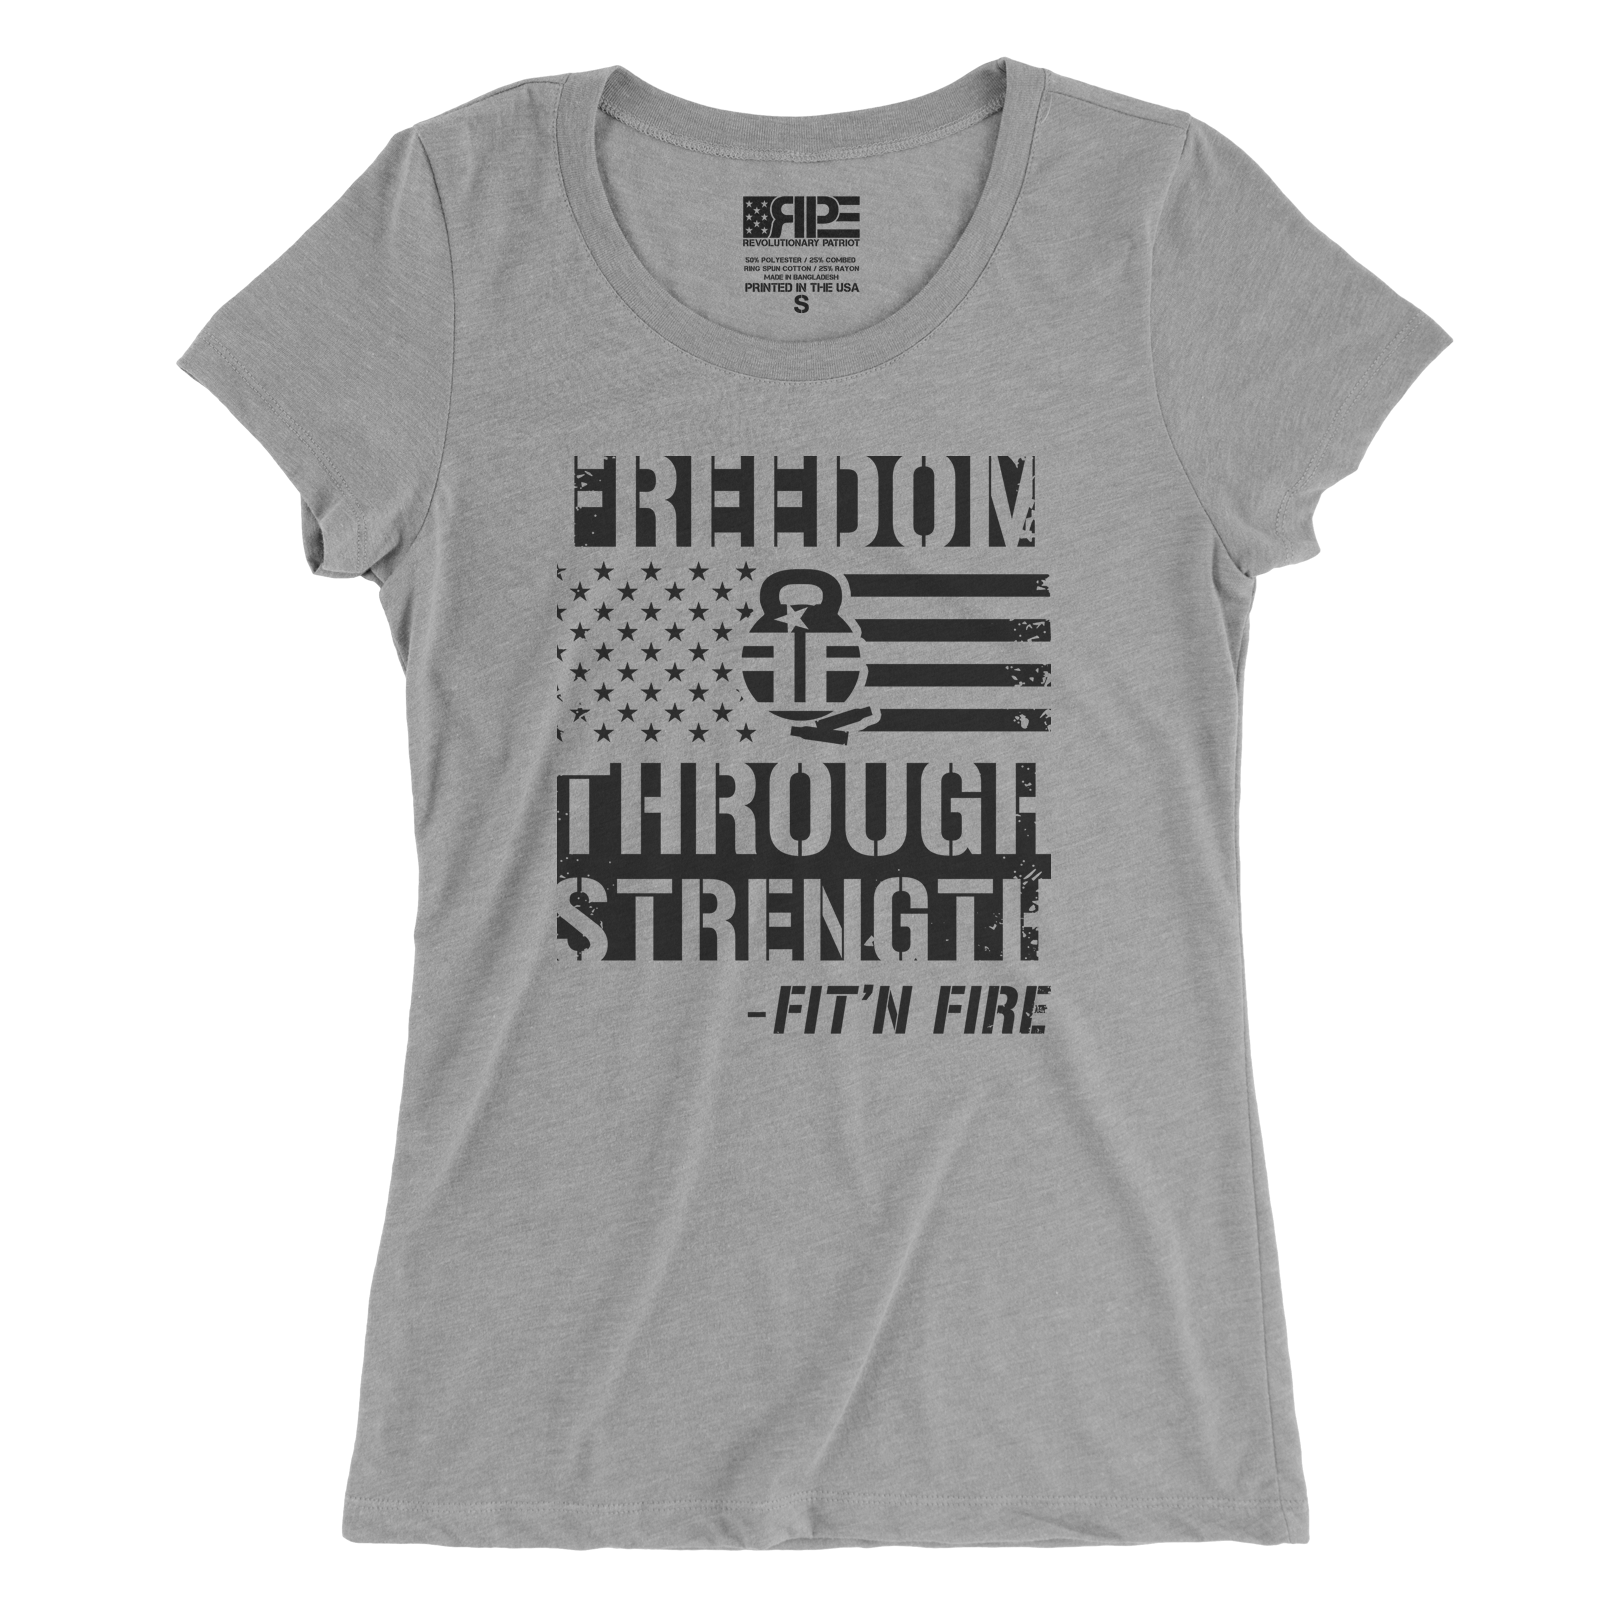 Freedom Through Strength Women's - (Grey) - Revolutionary Patriot